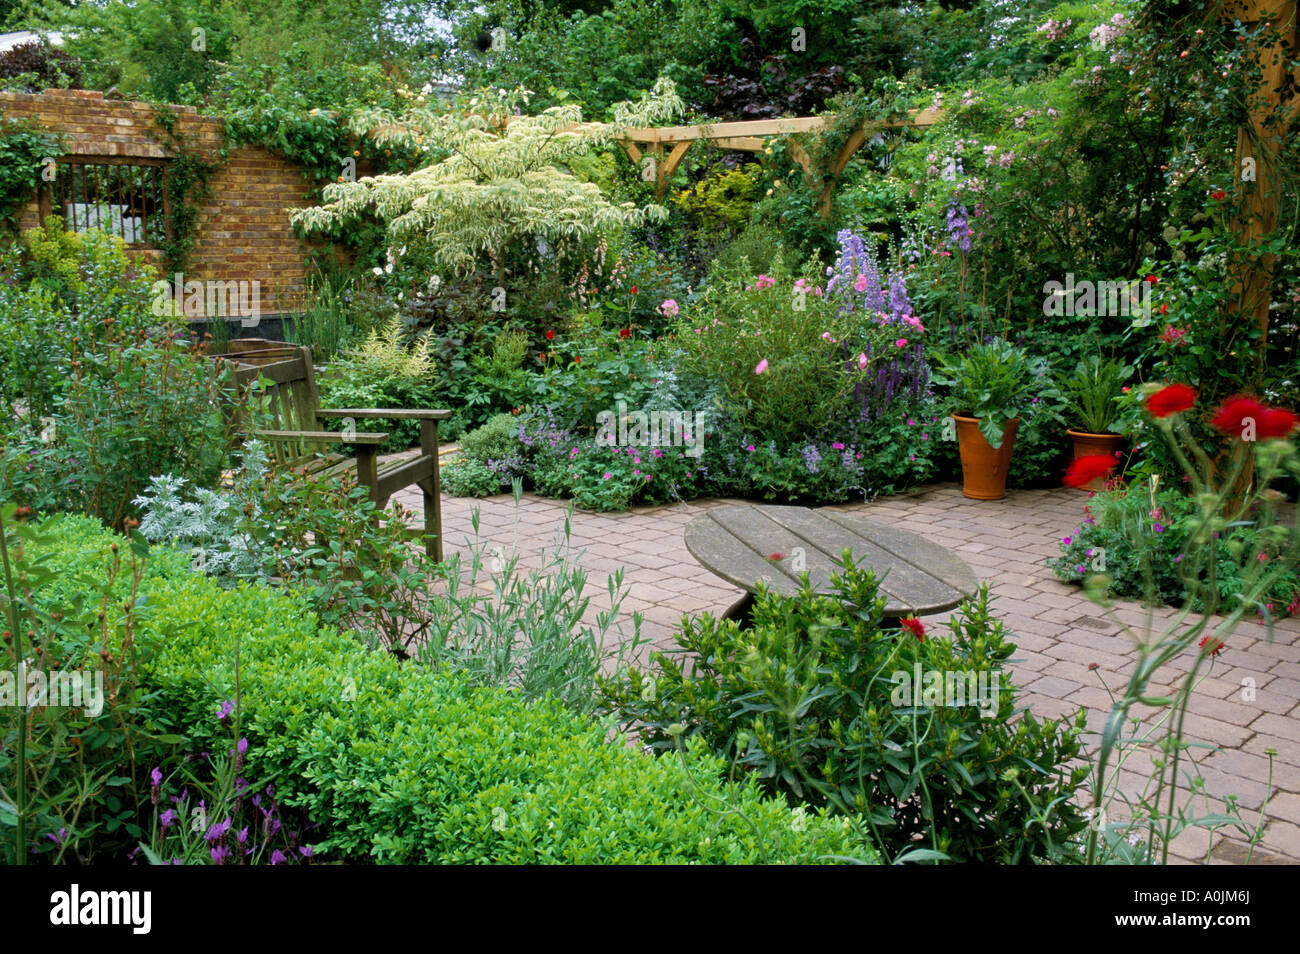 Chelsea Fs 2002 Country Cottage Garden With Patio Area Design Stock Photo Alamy